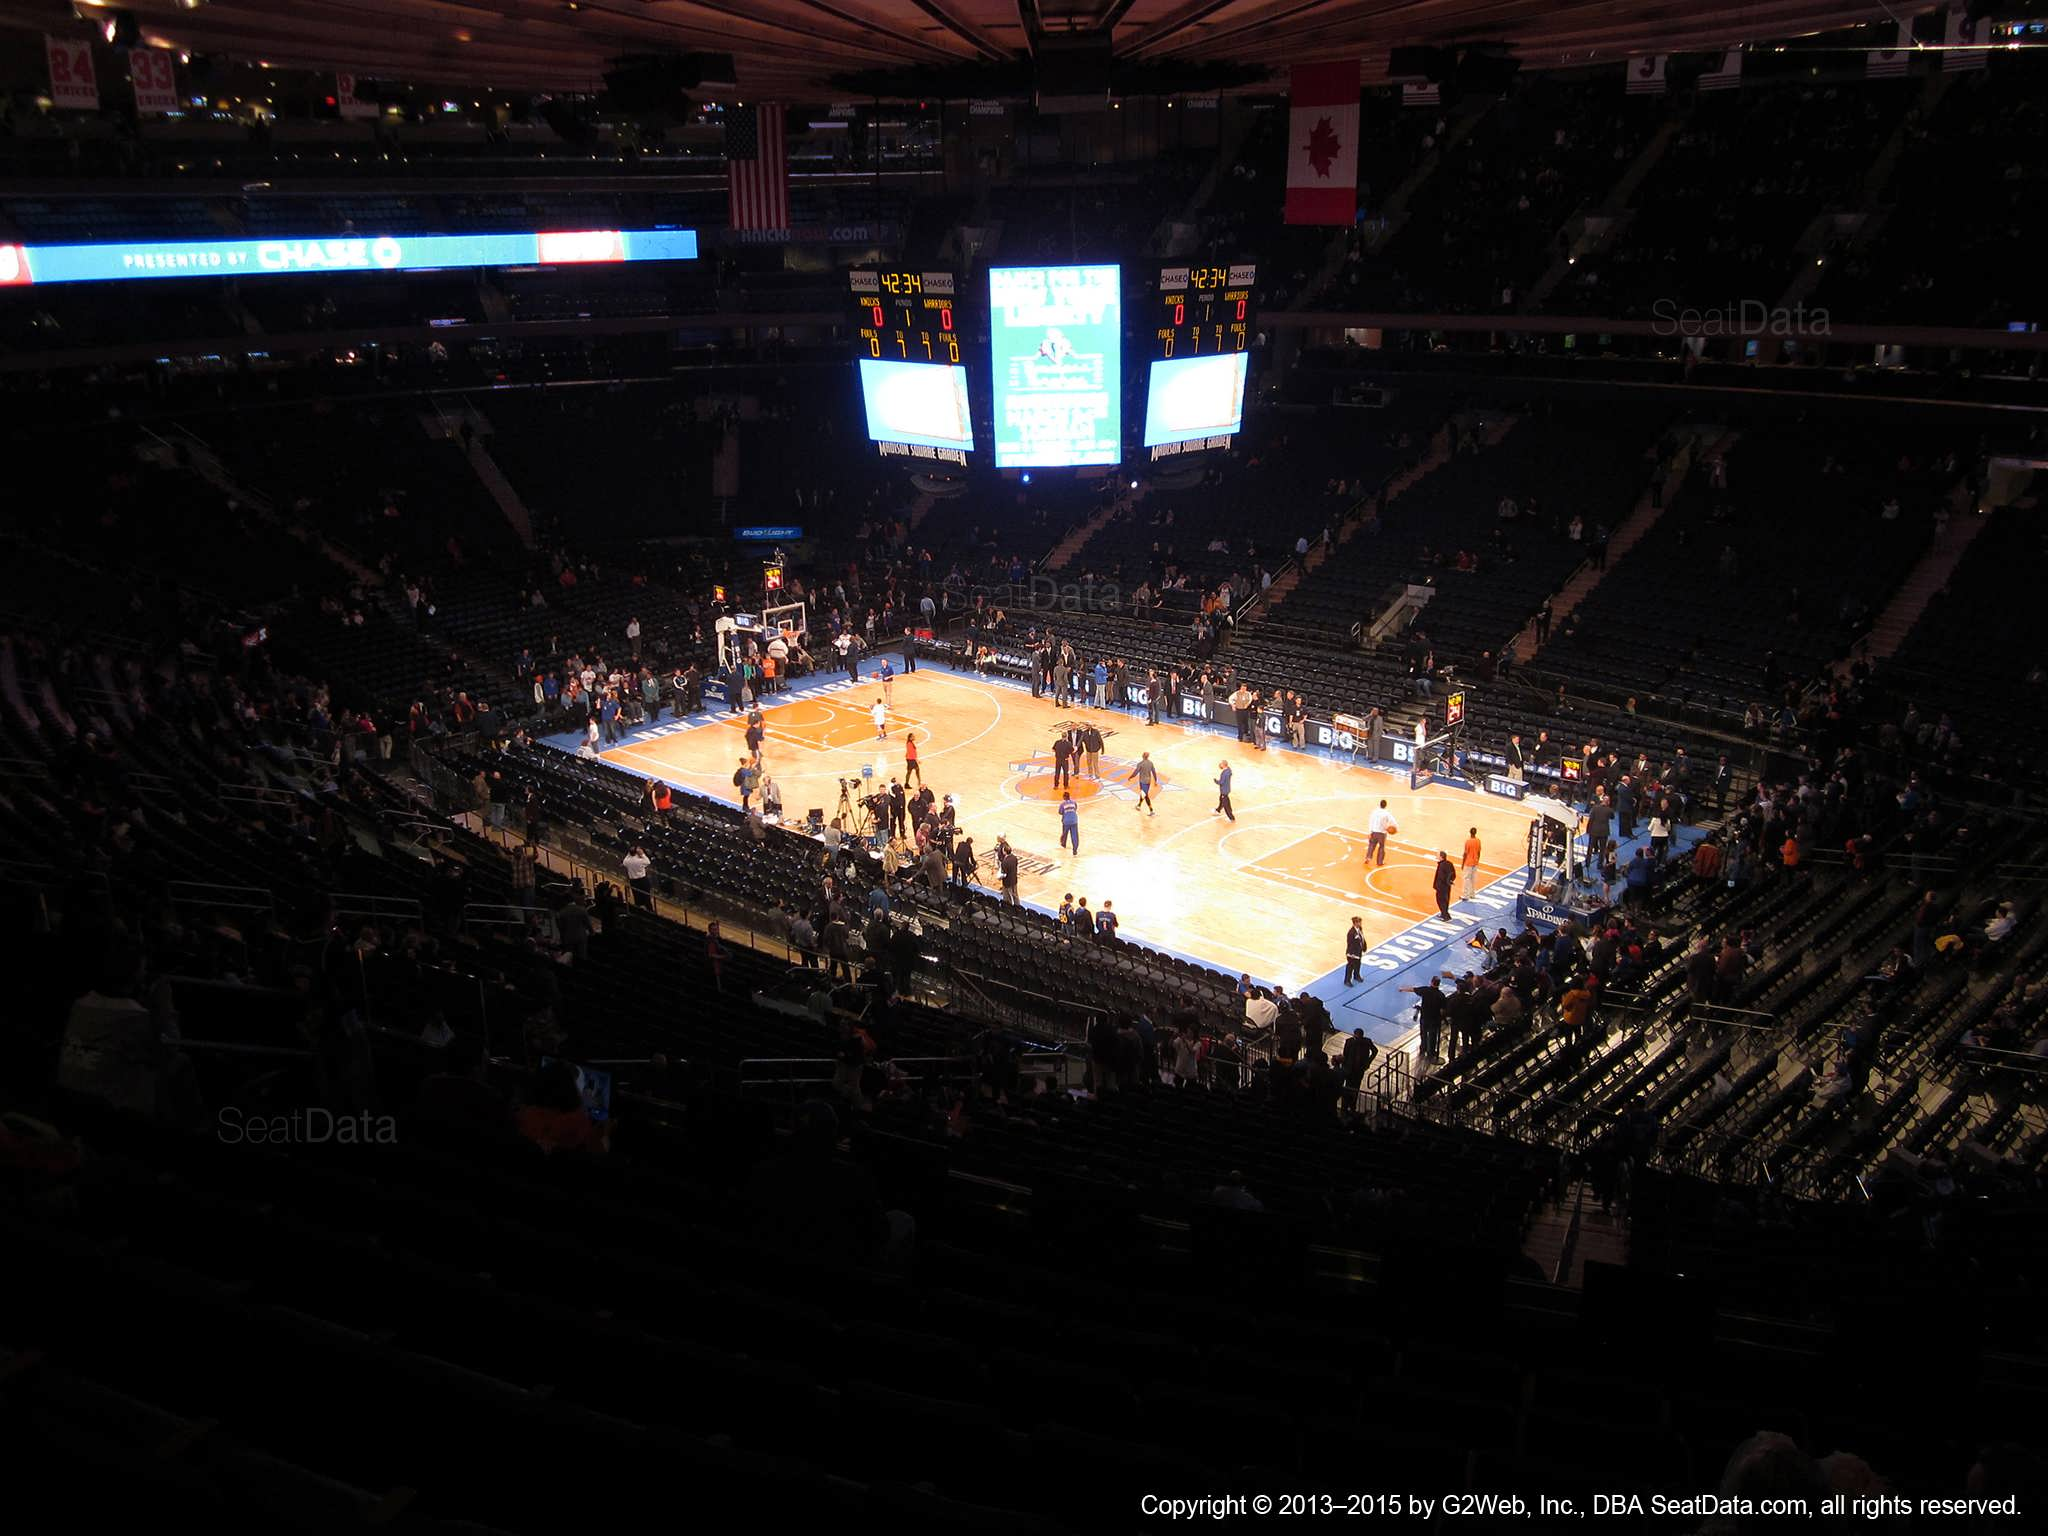 Seat view from section 201 at Madison Square Garden, home of the New York Knicks.